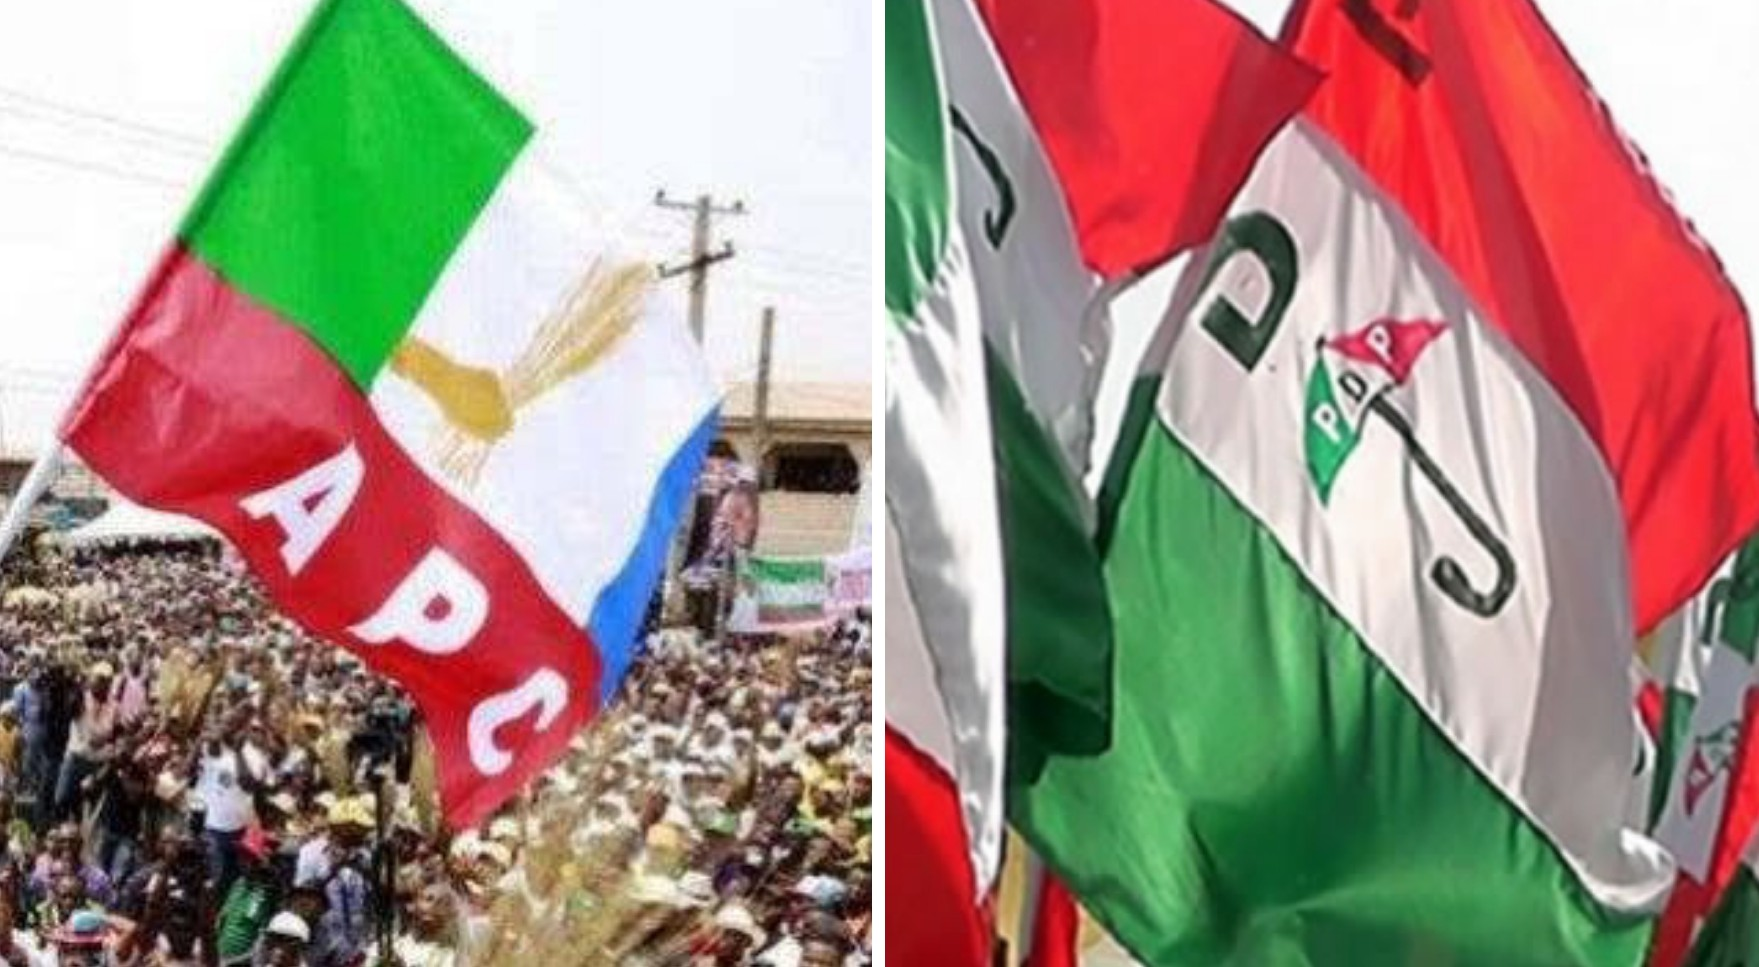 Ondo 2020: Confusion as PDP, APC campaign rallies fall on same day, venue